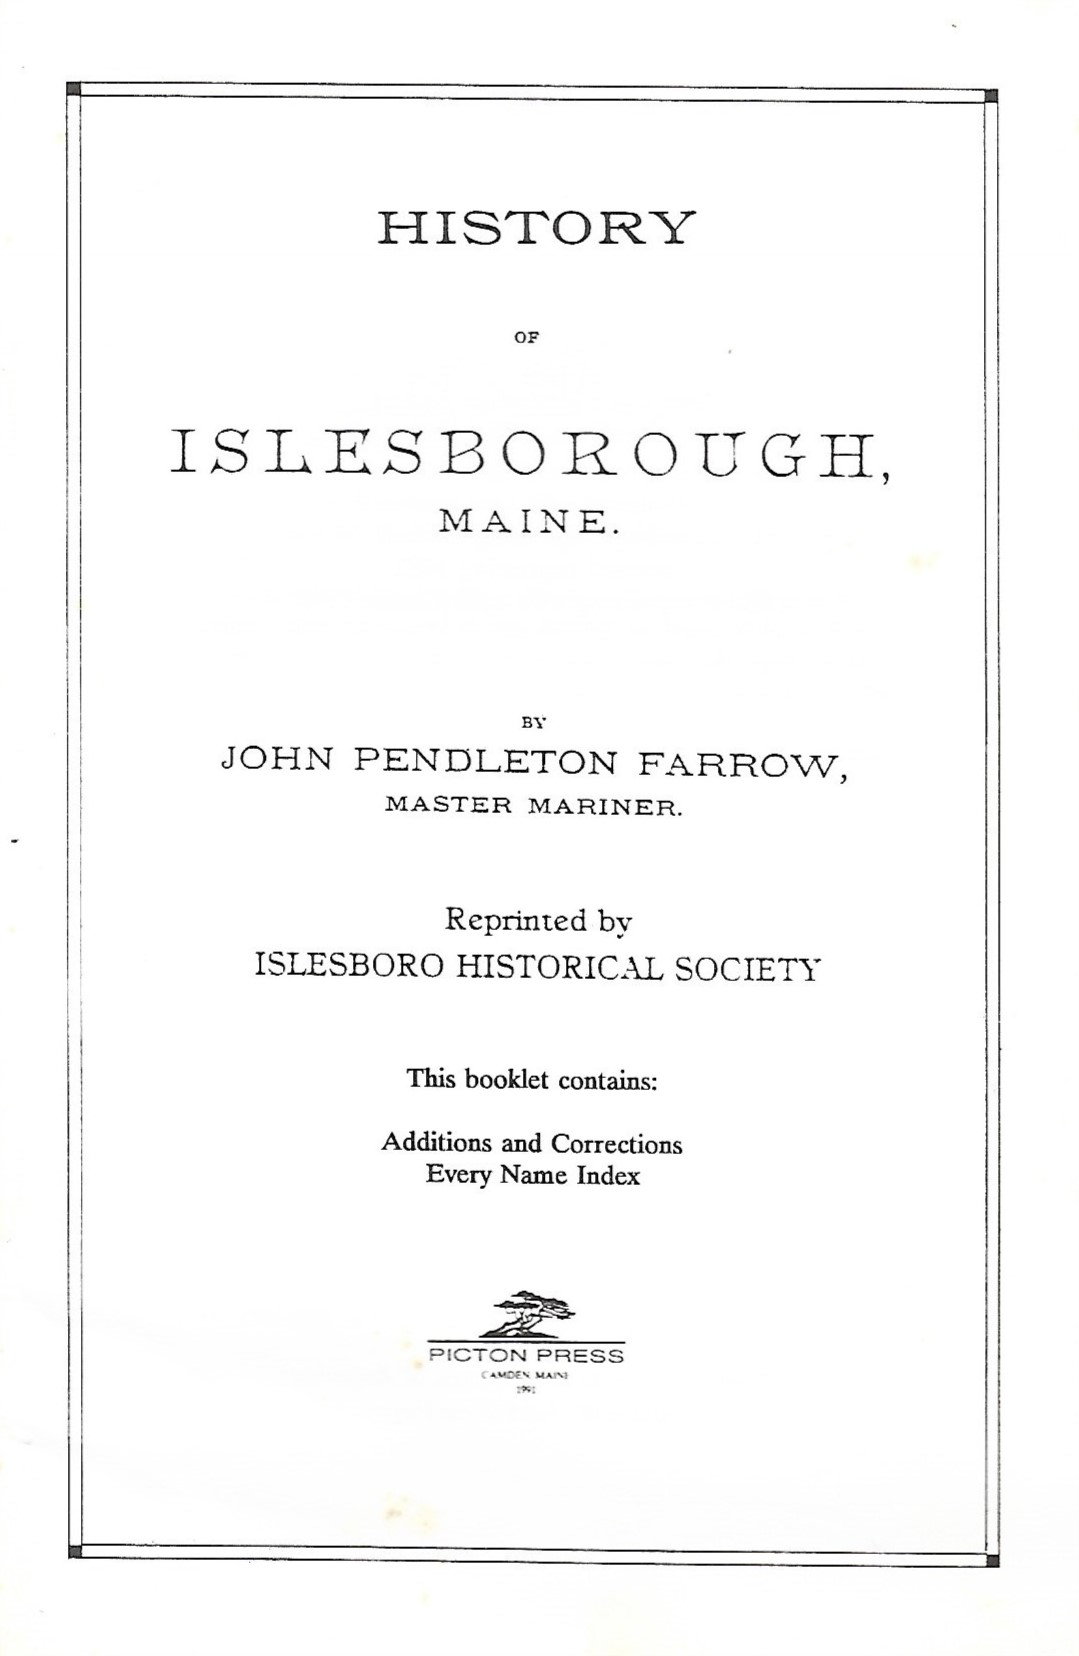 - This booklet supplements the History of Islesborough, Maine and contains:Additions and CorrectionsEvery Name IndexAuthor: John Pendleton Farrow, Master MarinerReprinted by Islesboro Historical SocietyPrice: $3.79Plus Maine Sales Tax $.21